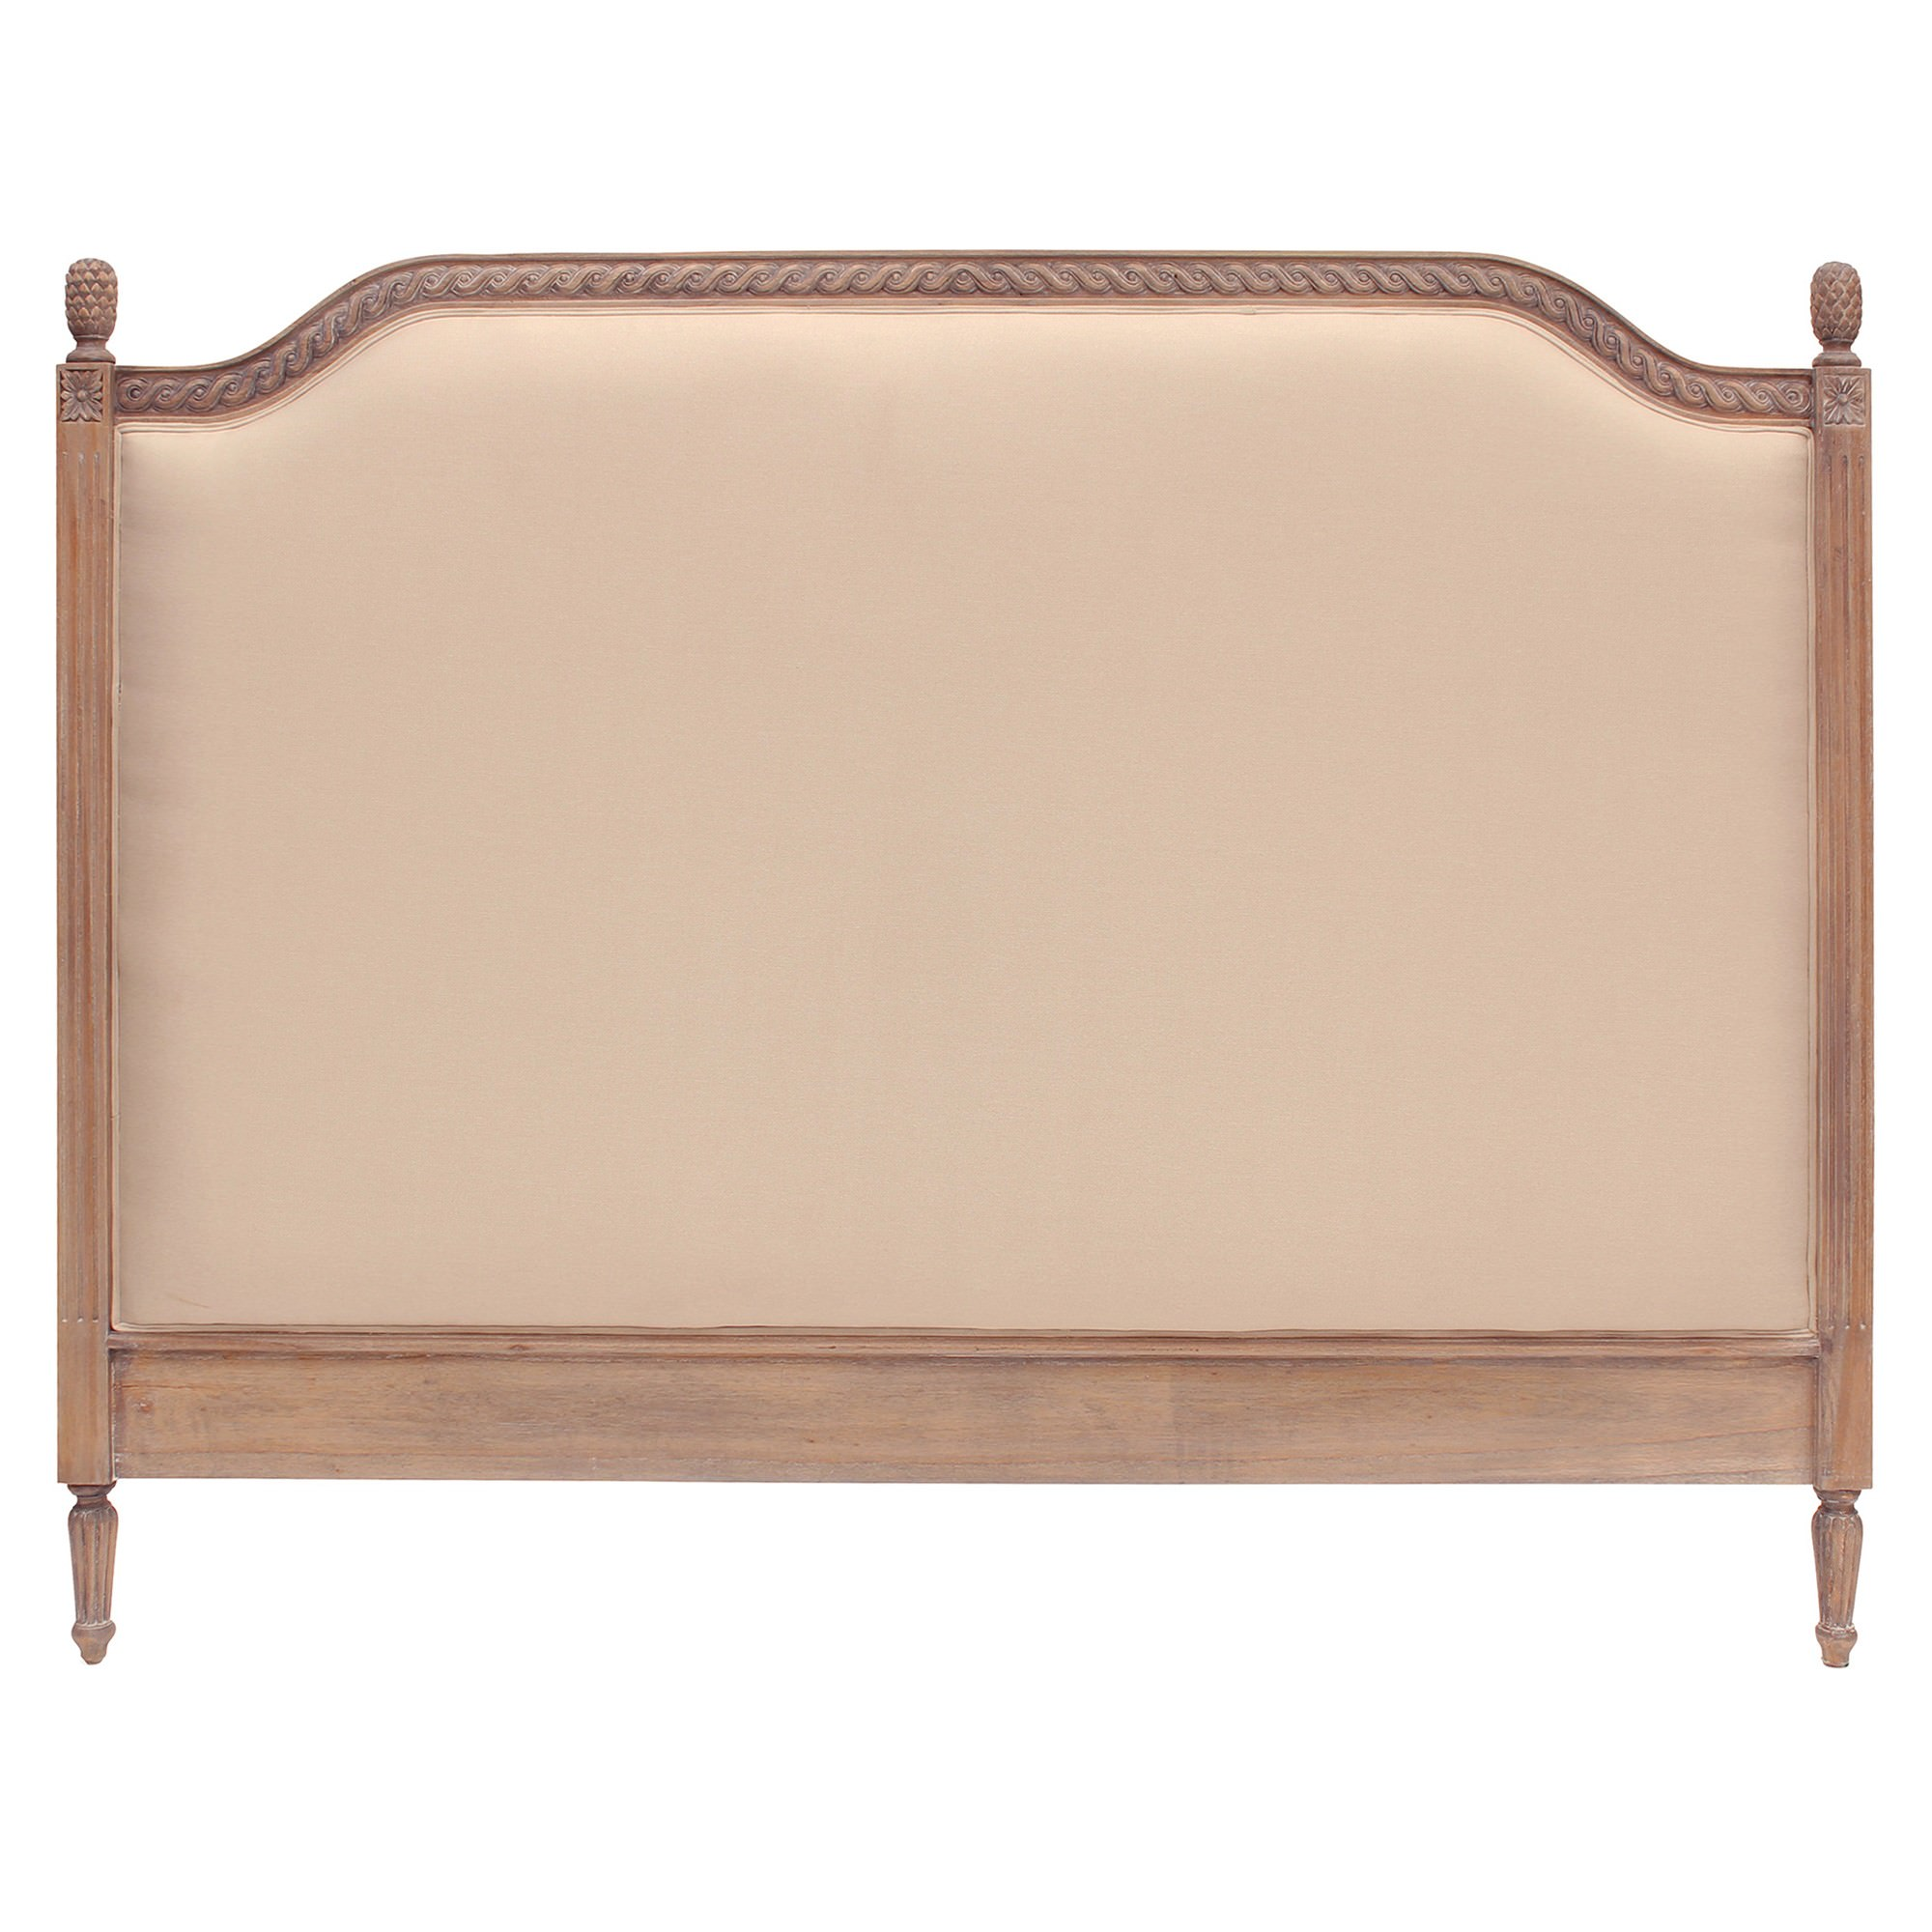 Lapalisse Hand Crafted Upholstered  Mahogany Timber Bed Headboard, King, Weathered Oak